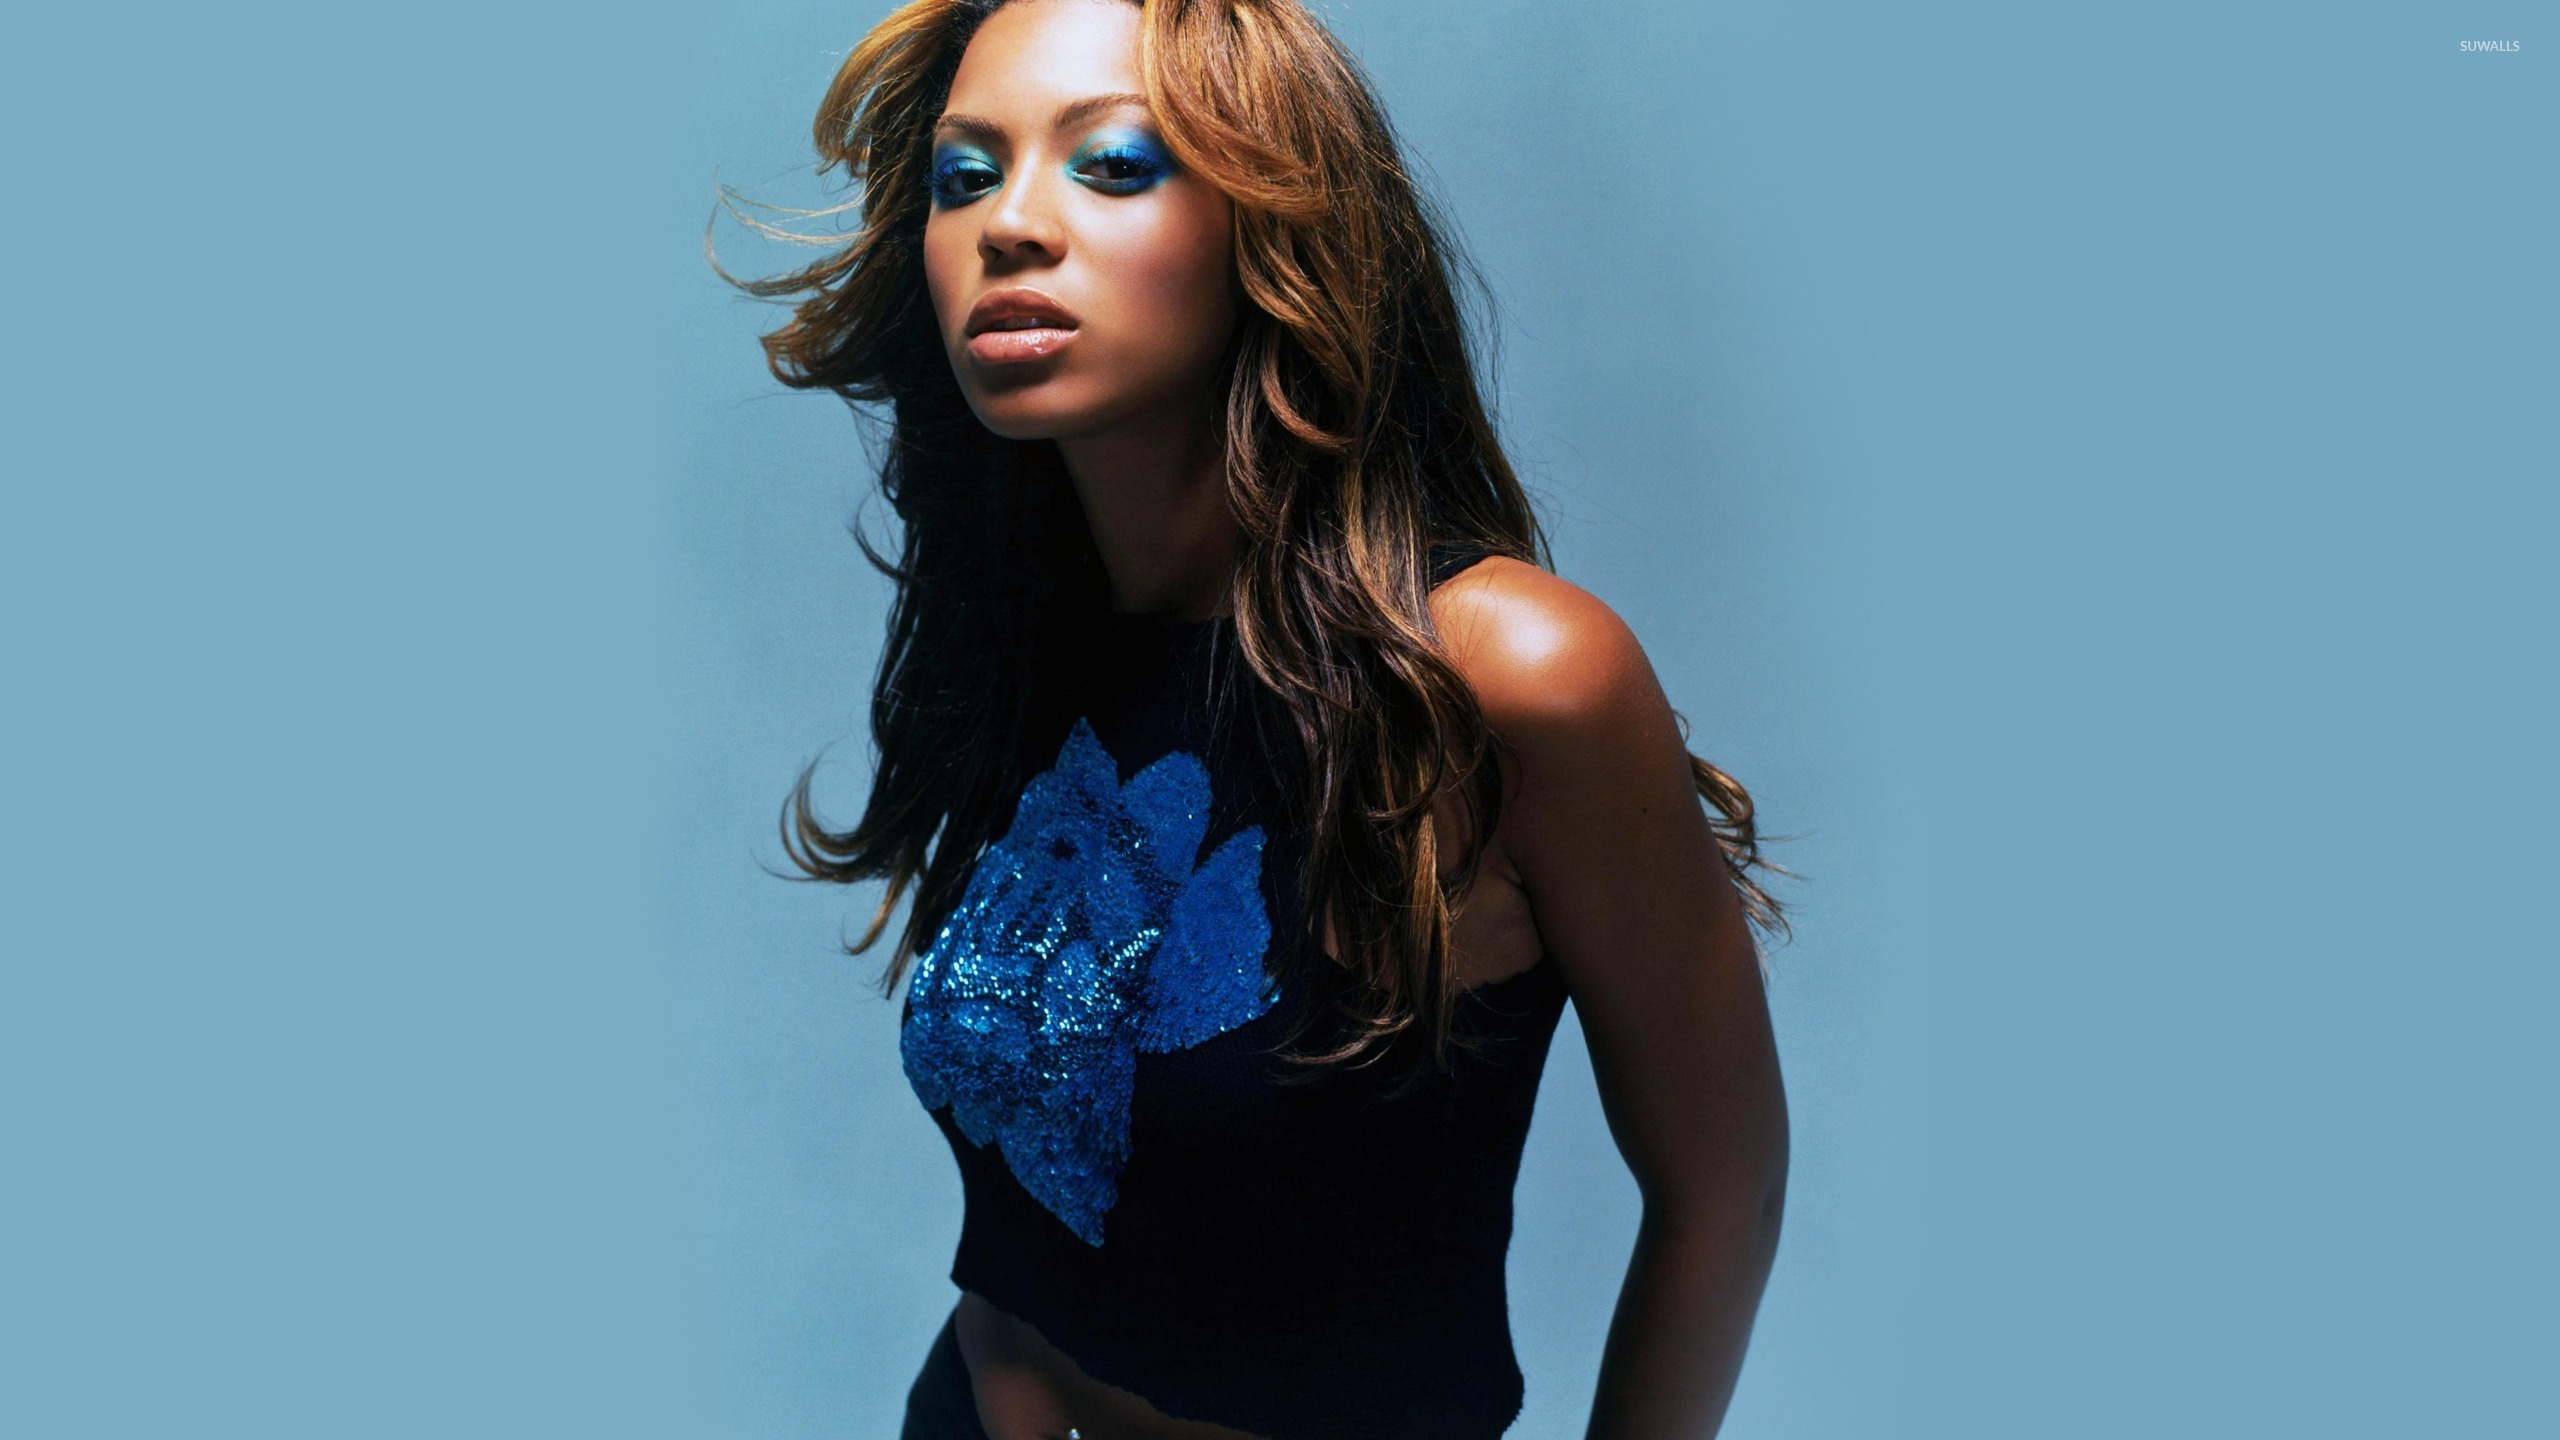 beyonce knowles desktop background - photo #4